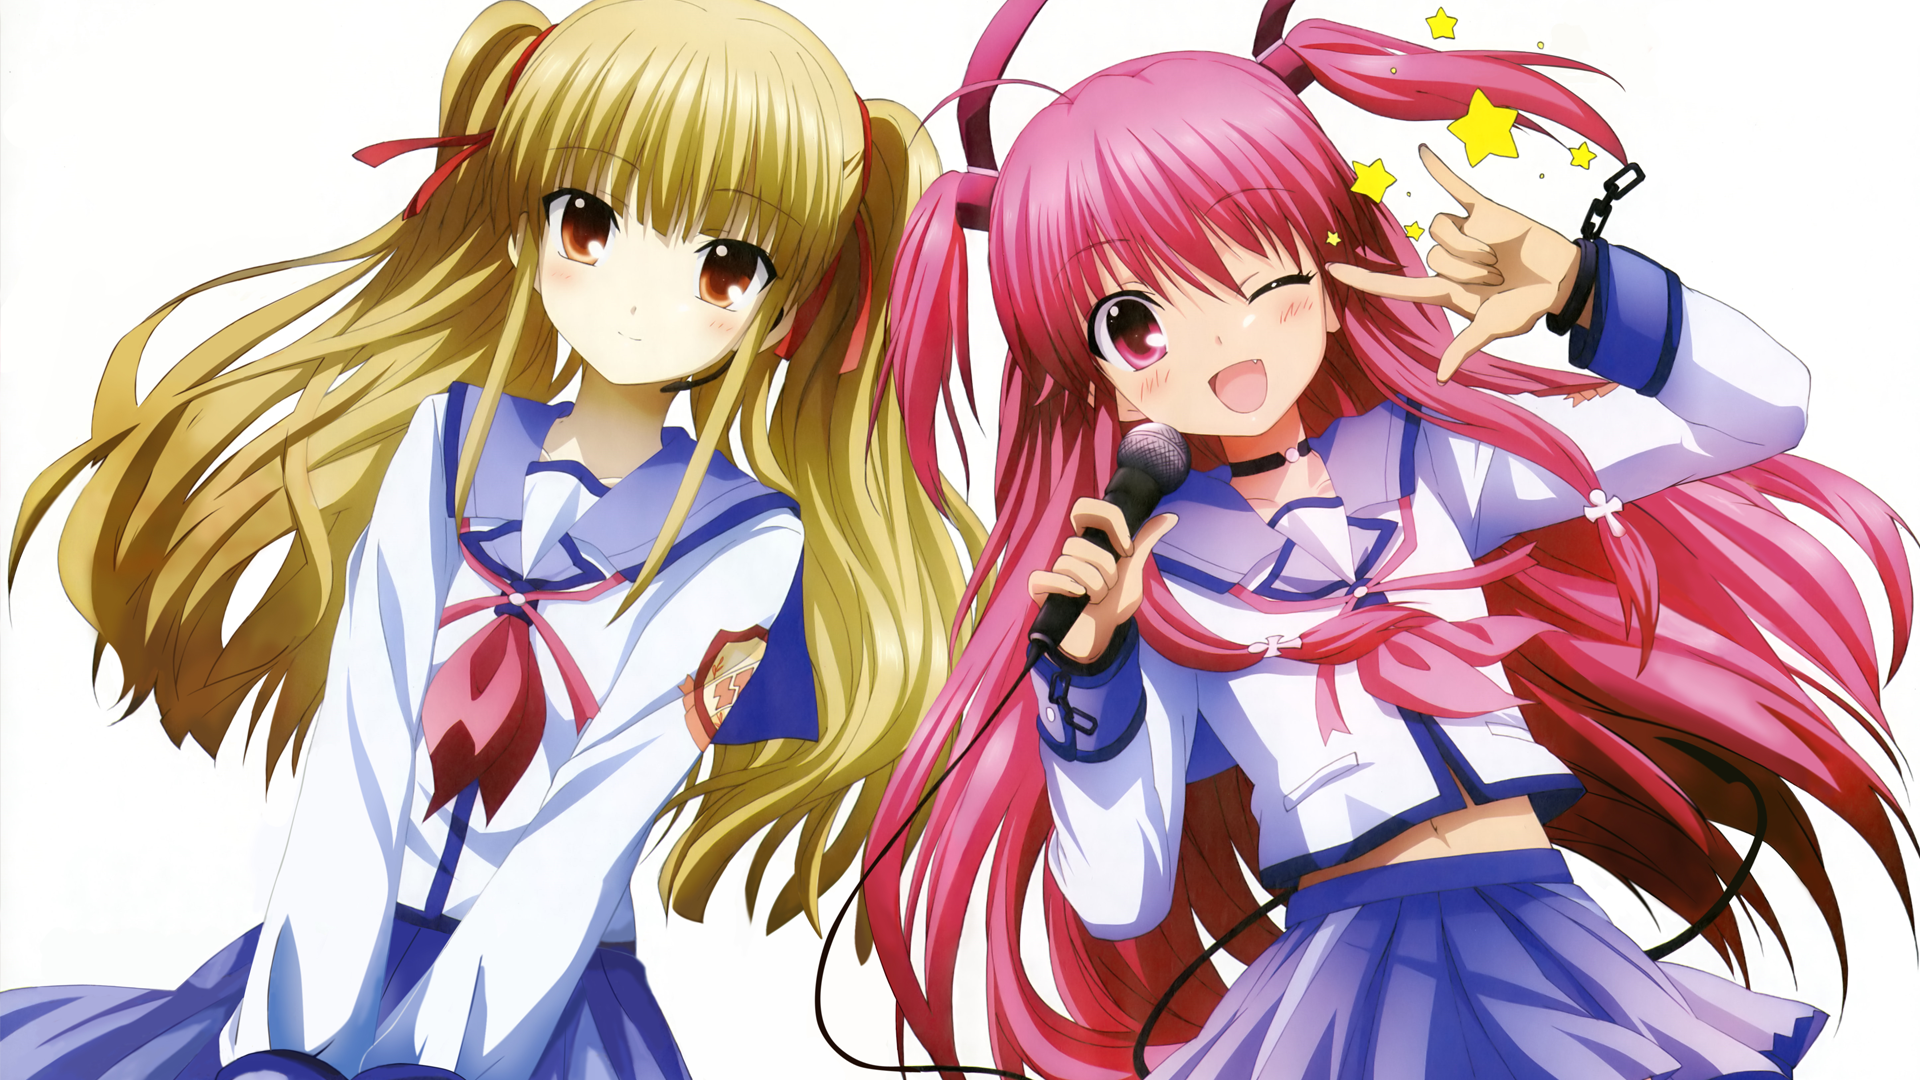 Angel beats full hd wallpaper and background image 1920x1080 anime angel beats yui angel beats yusa angel beats voltagebd Gallery